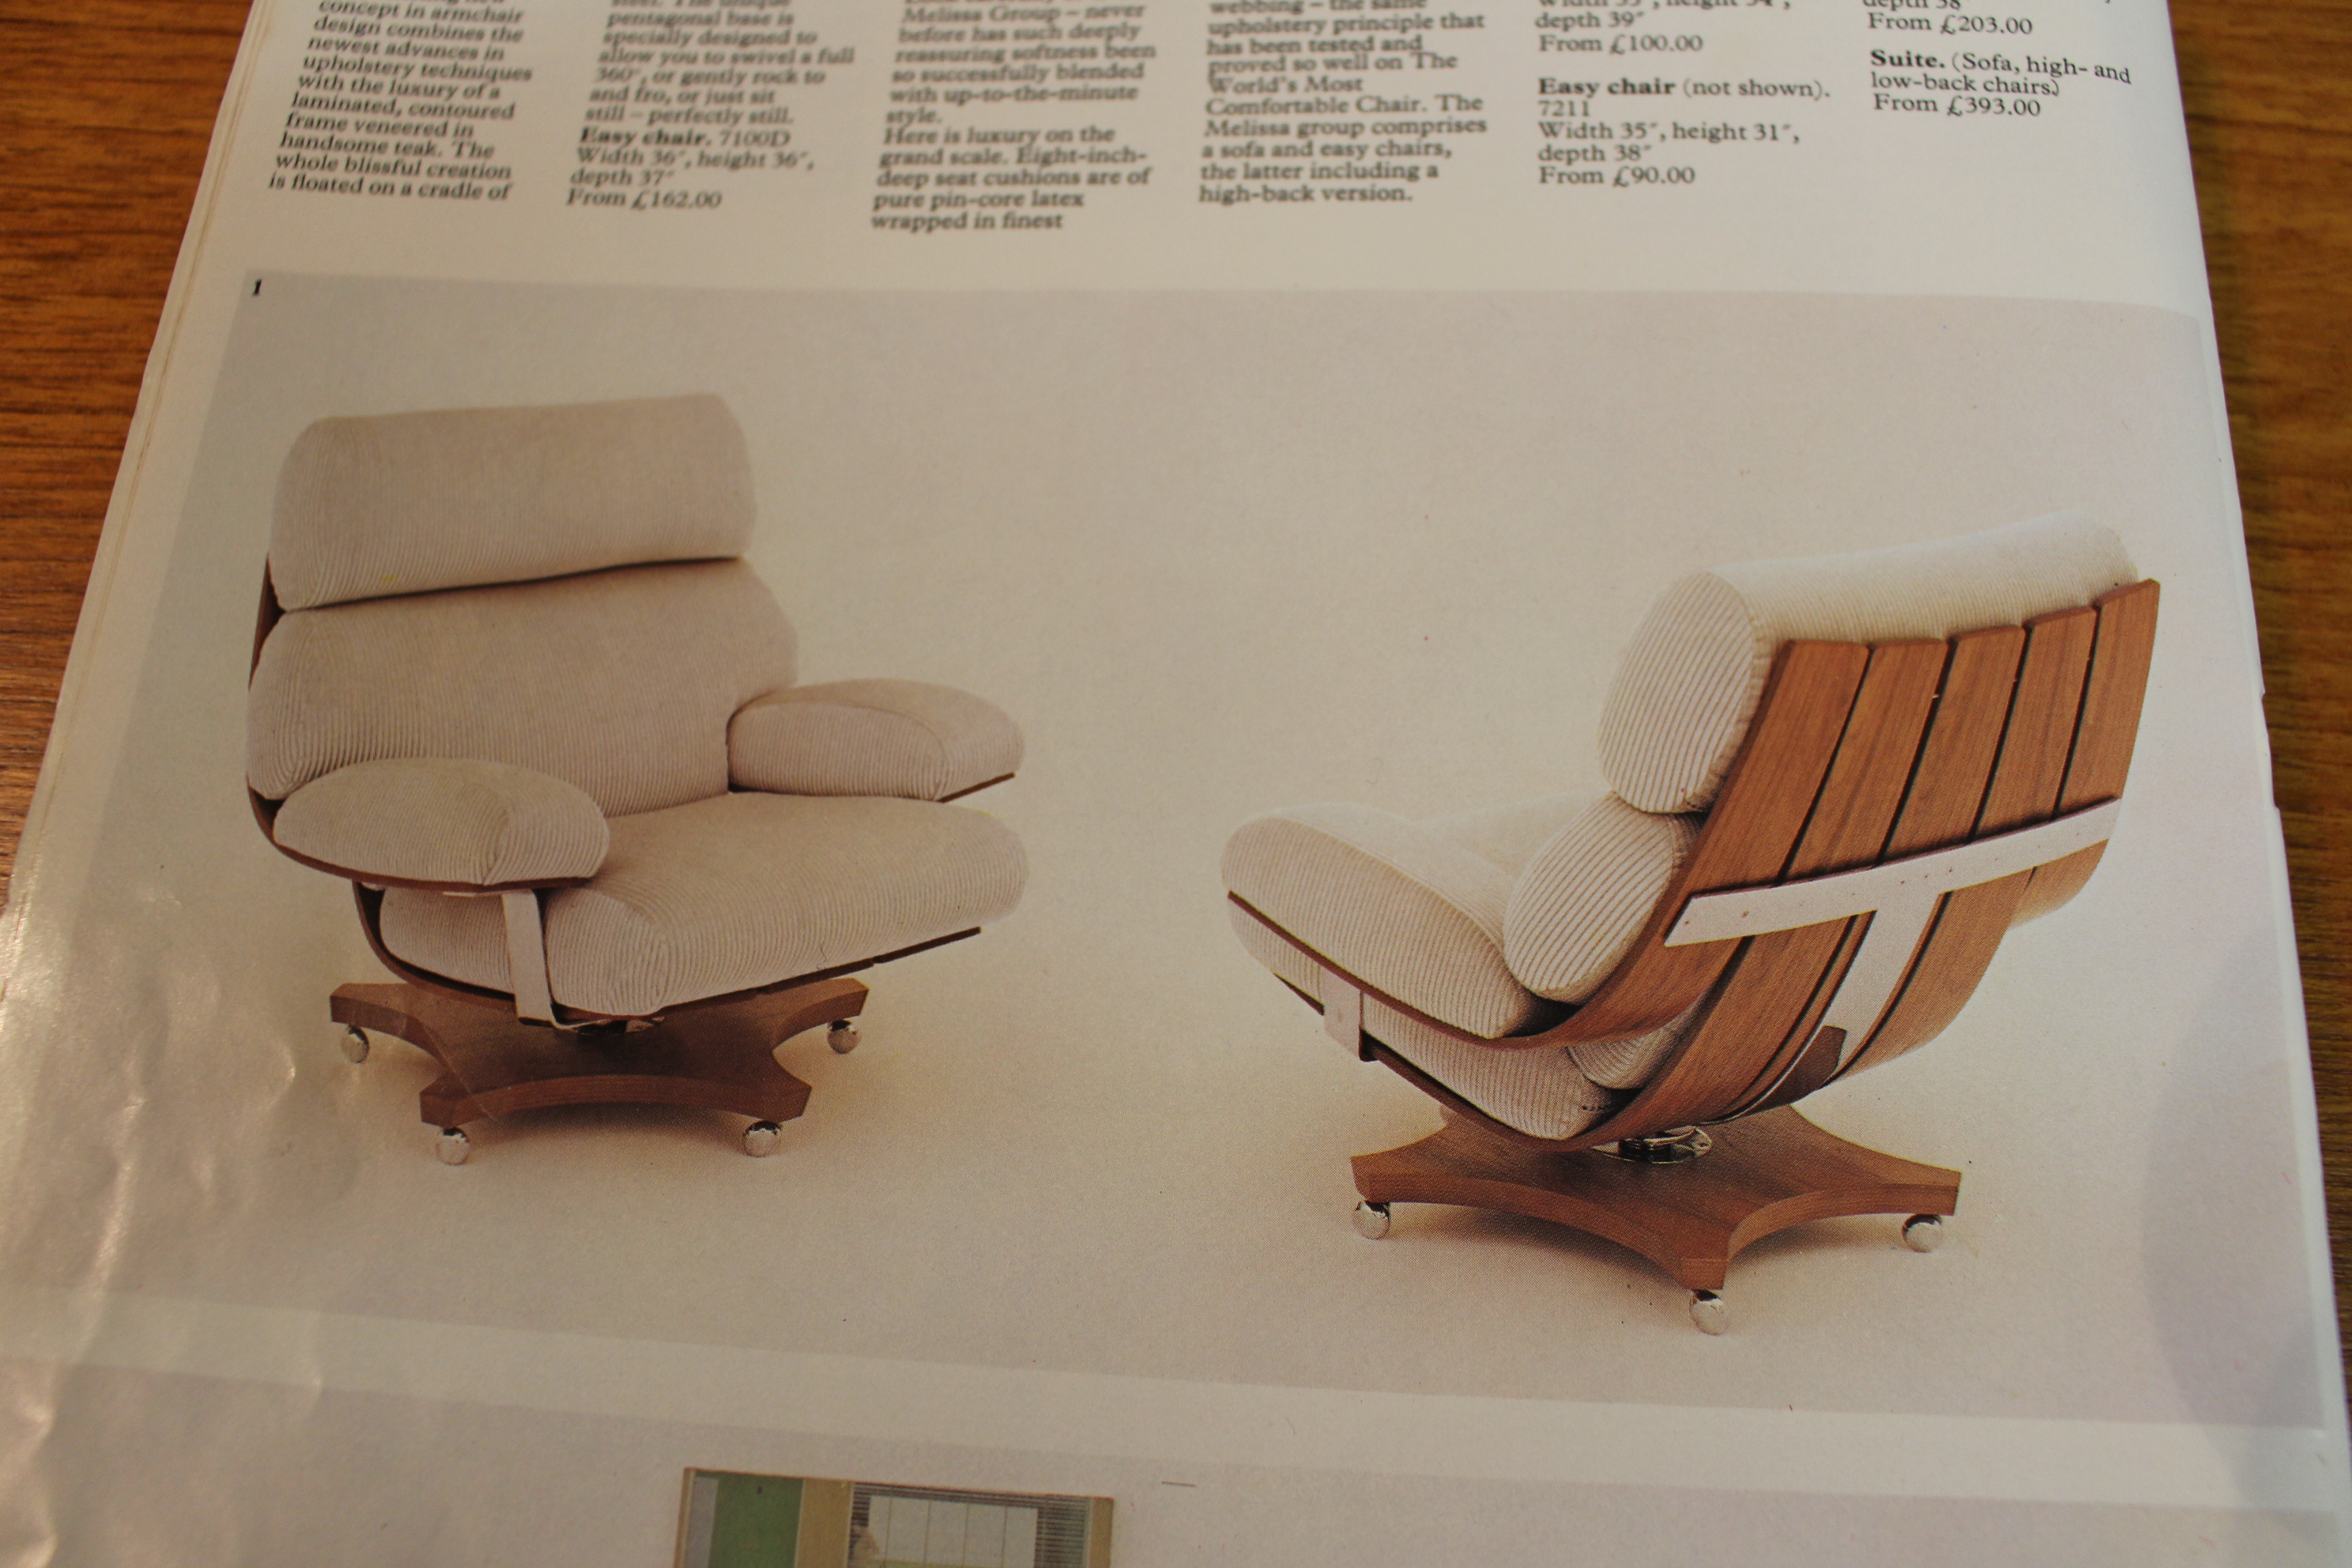 We buy G Plan Housemaster chairs for re-upholstery - Vintage Retro